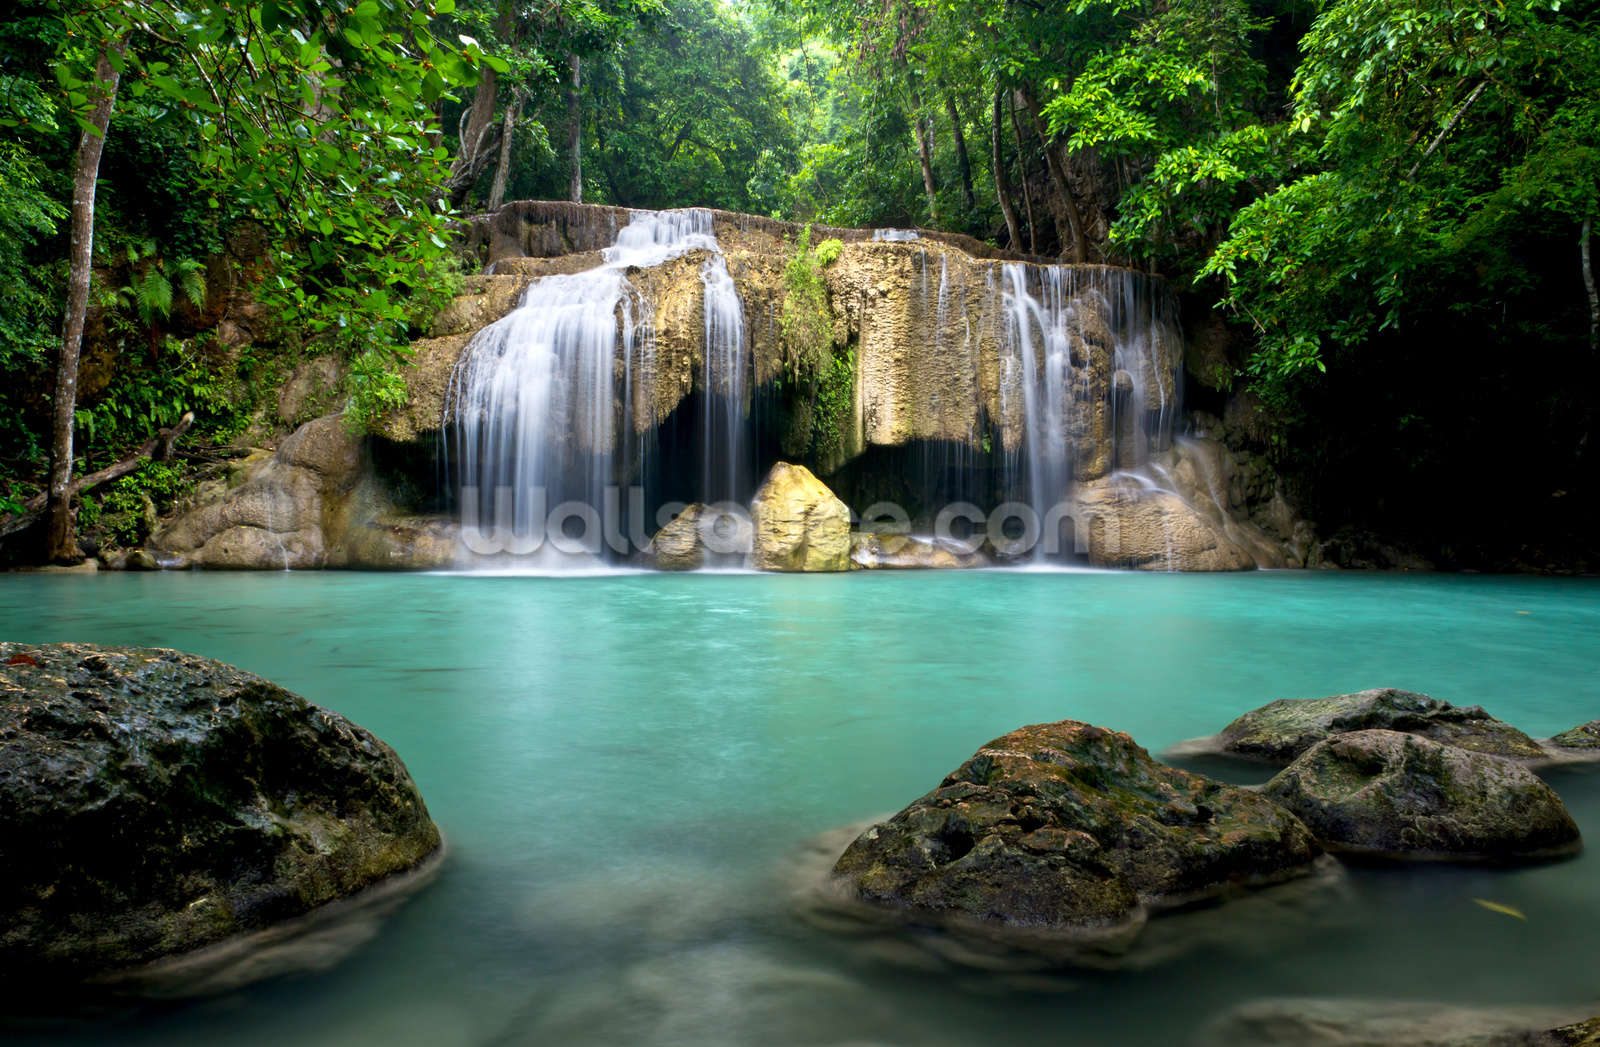 waterfall in kanchanaburi thailand wallpaper wall mural wallsauce usa. Black Bedroom Furniture Sets. Home Design Ideas